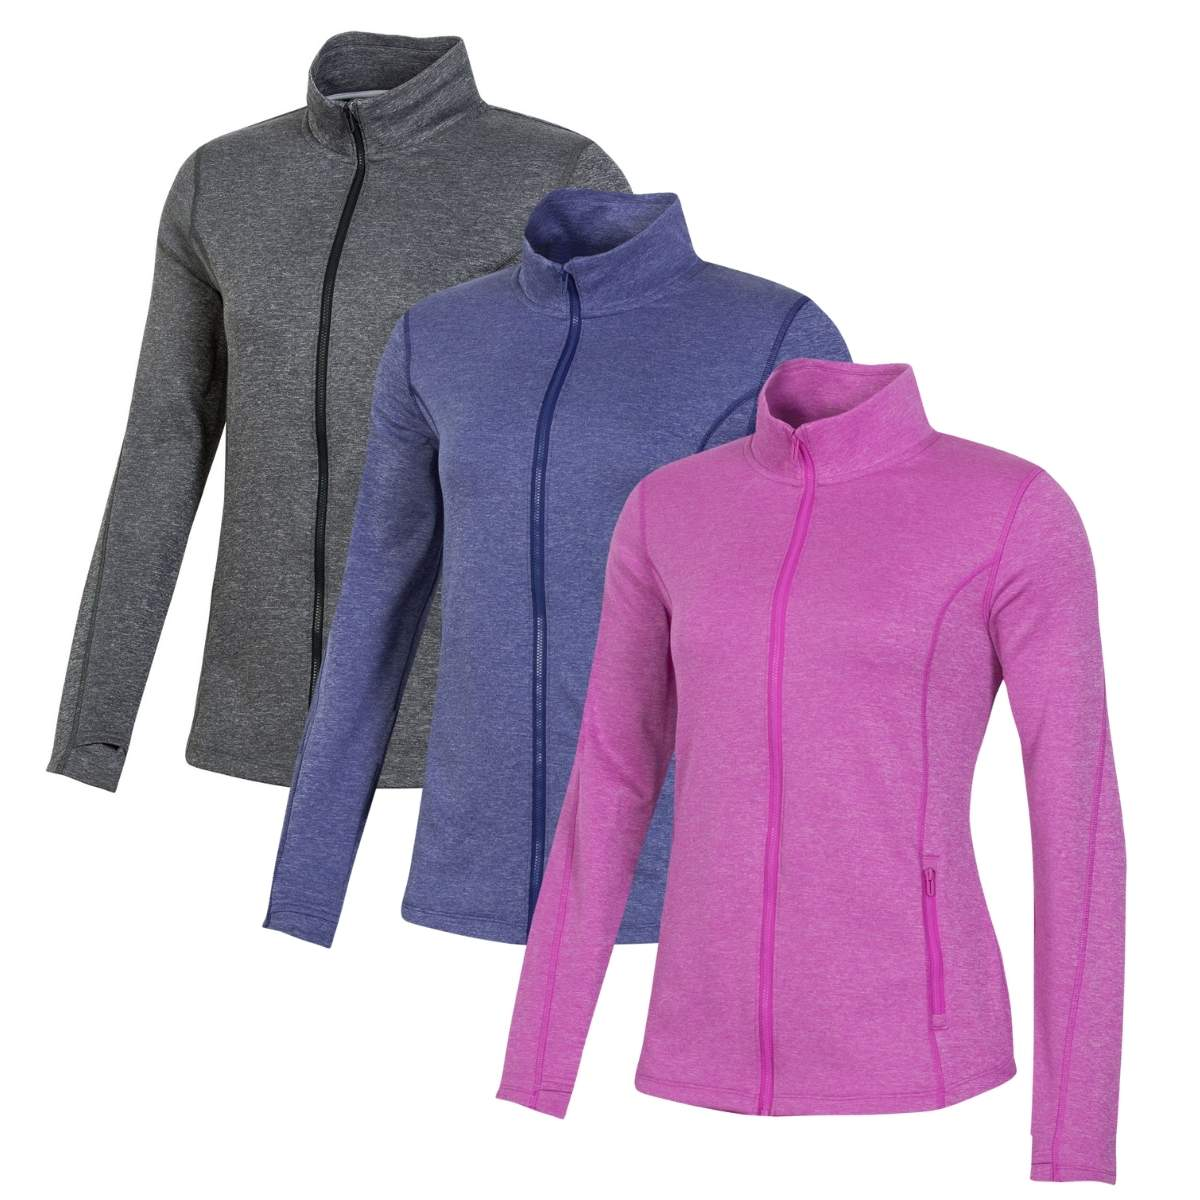 Under Armour Women's 2021 Range Fleece Full Zip Jacket